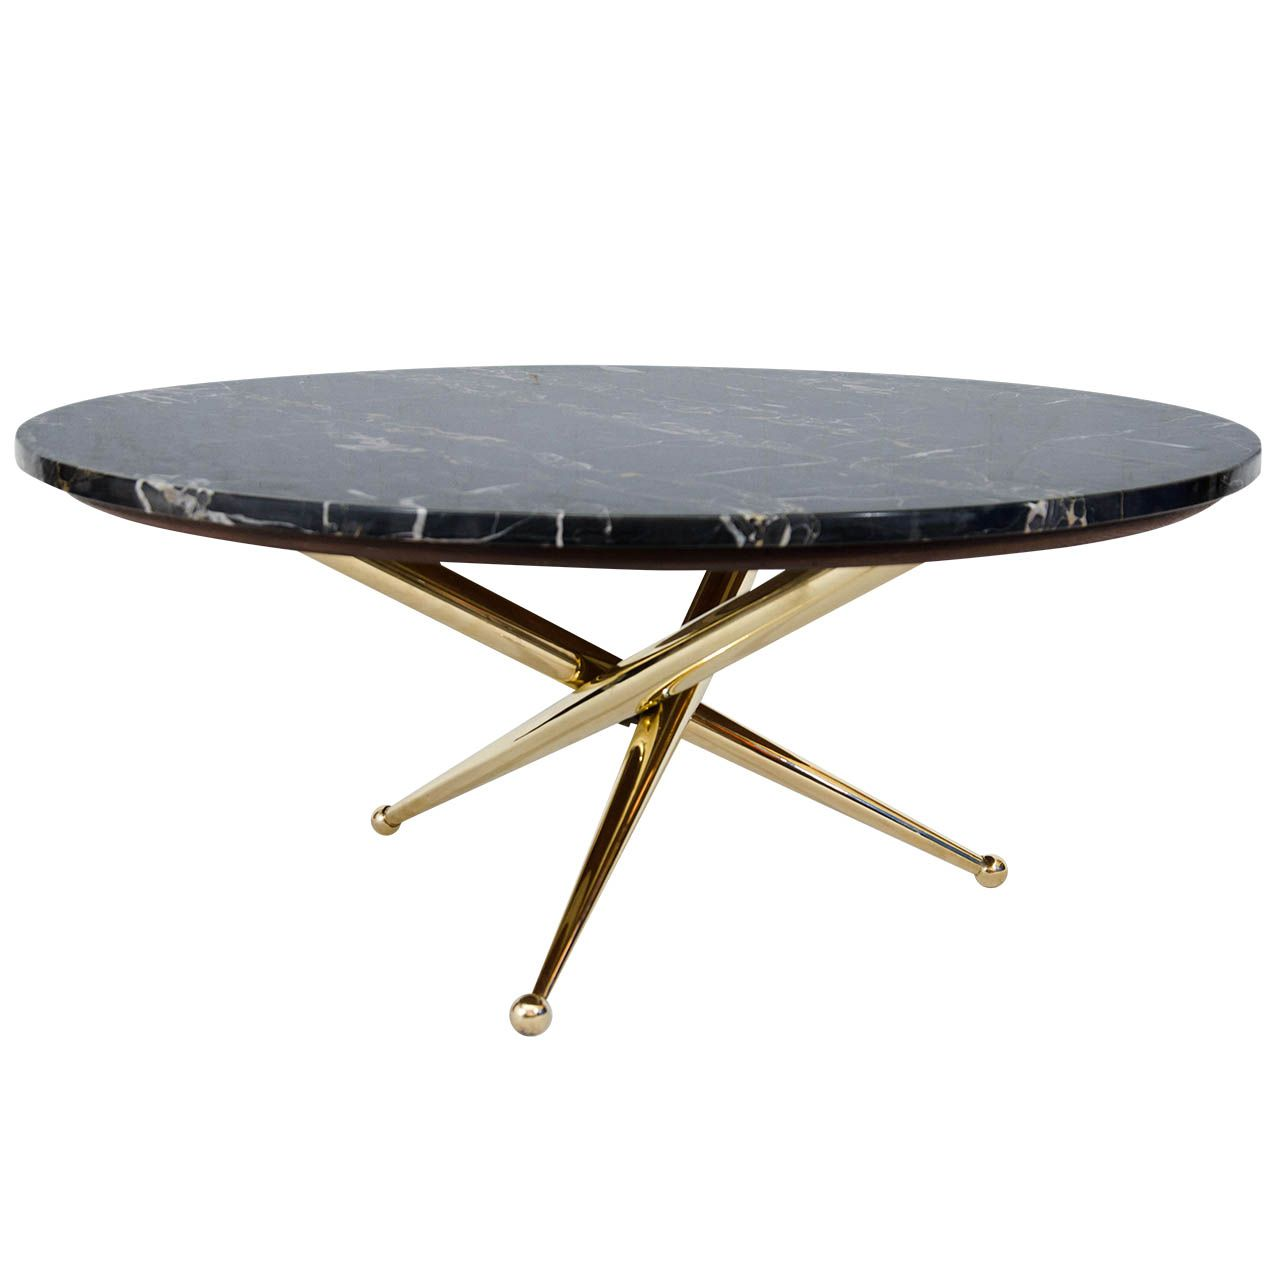 Italian Design Coffee Tables italian design coffee tables marble coffee table design photo 2 contemporary round coffee table from top Italian Marble And Brass Coffee Table From A Unique Collection Of Antique And Modern Coffee